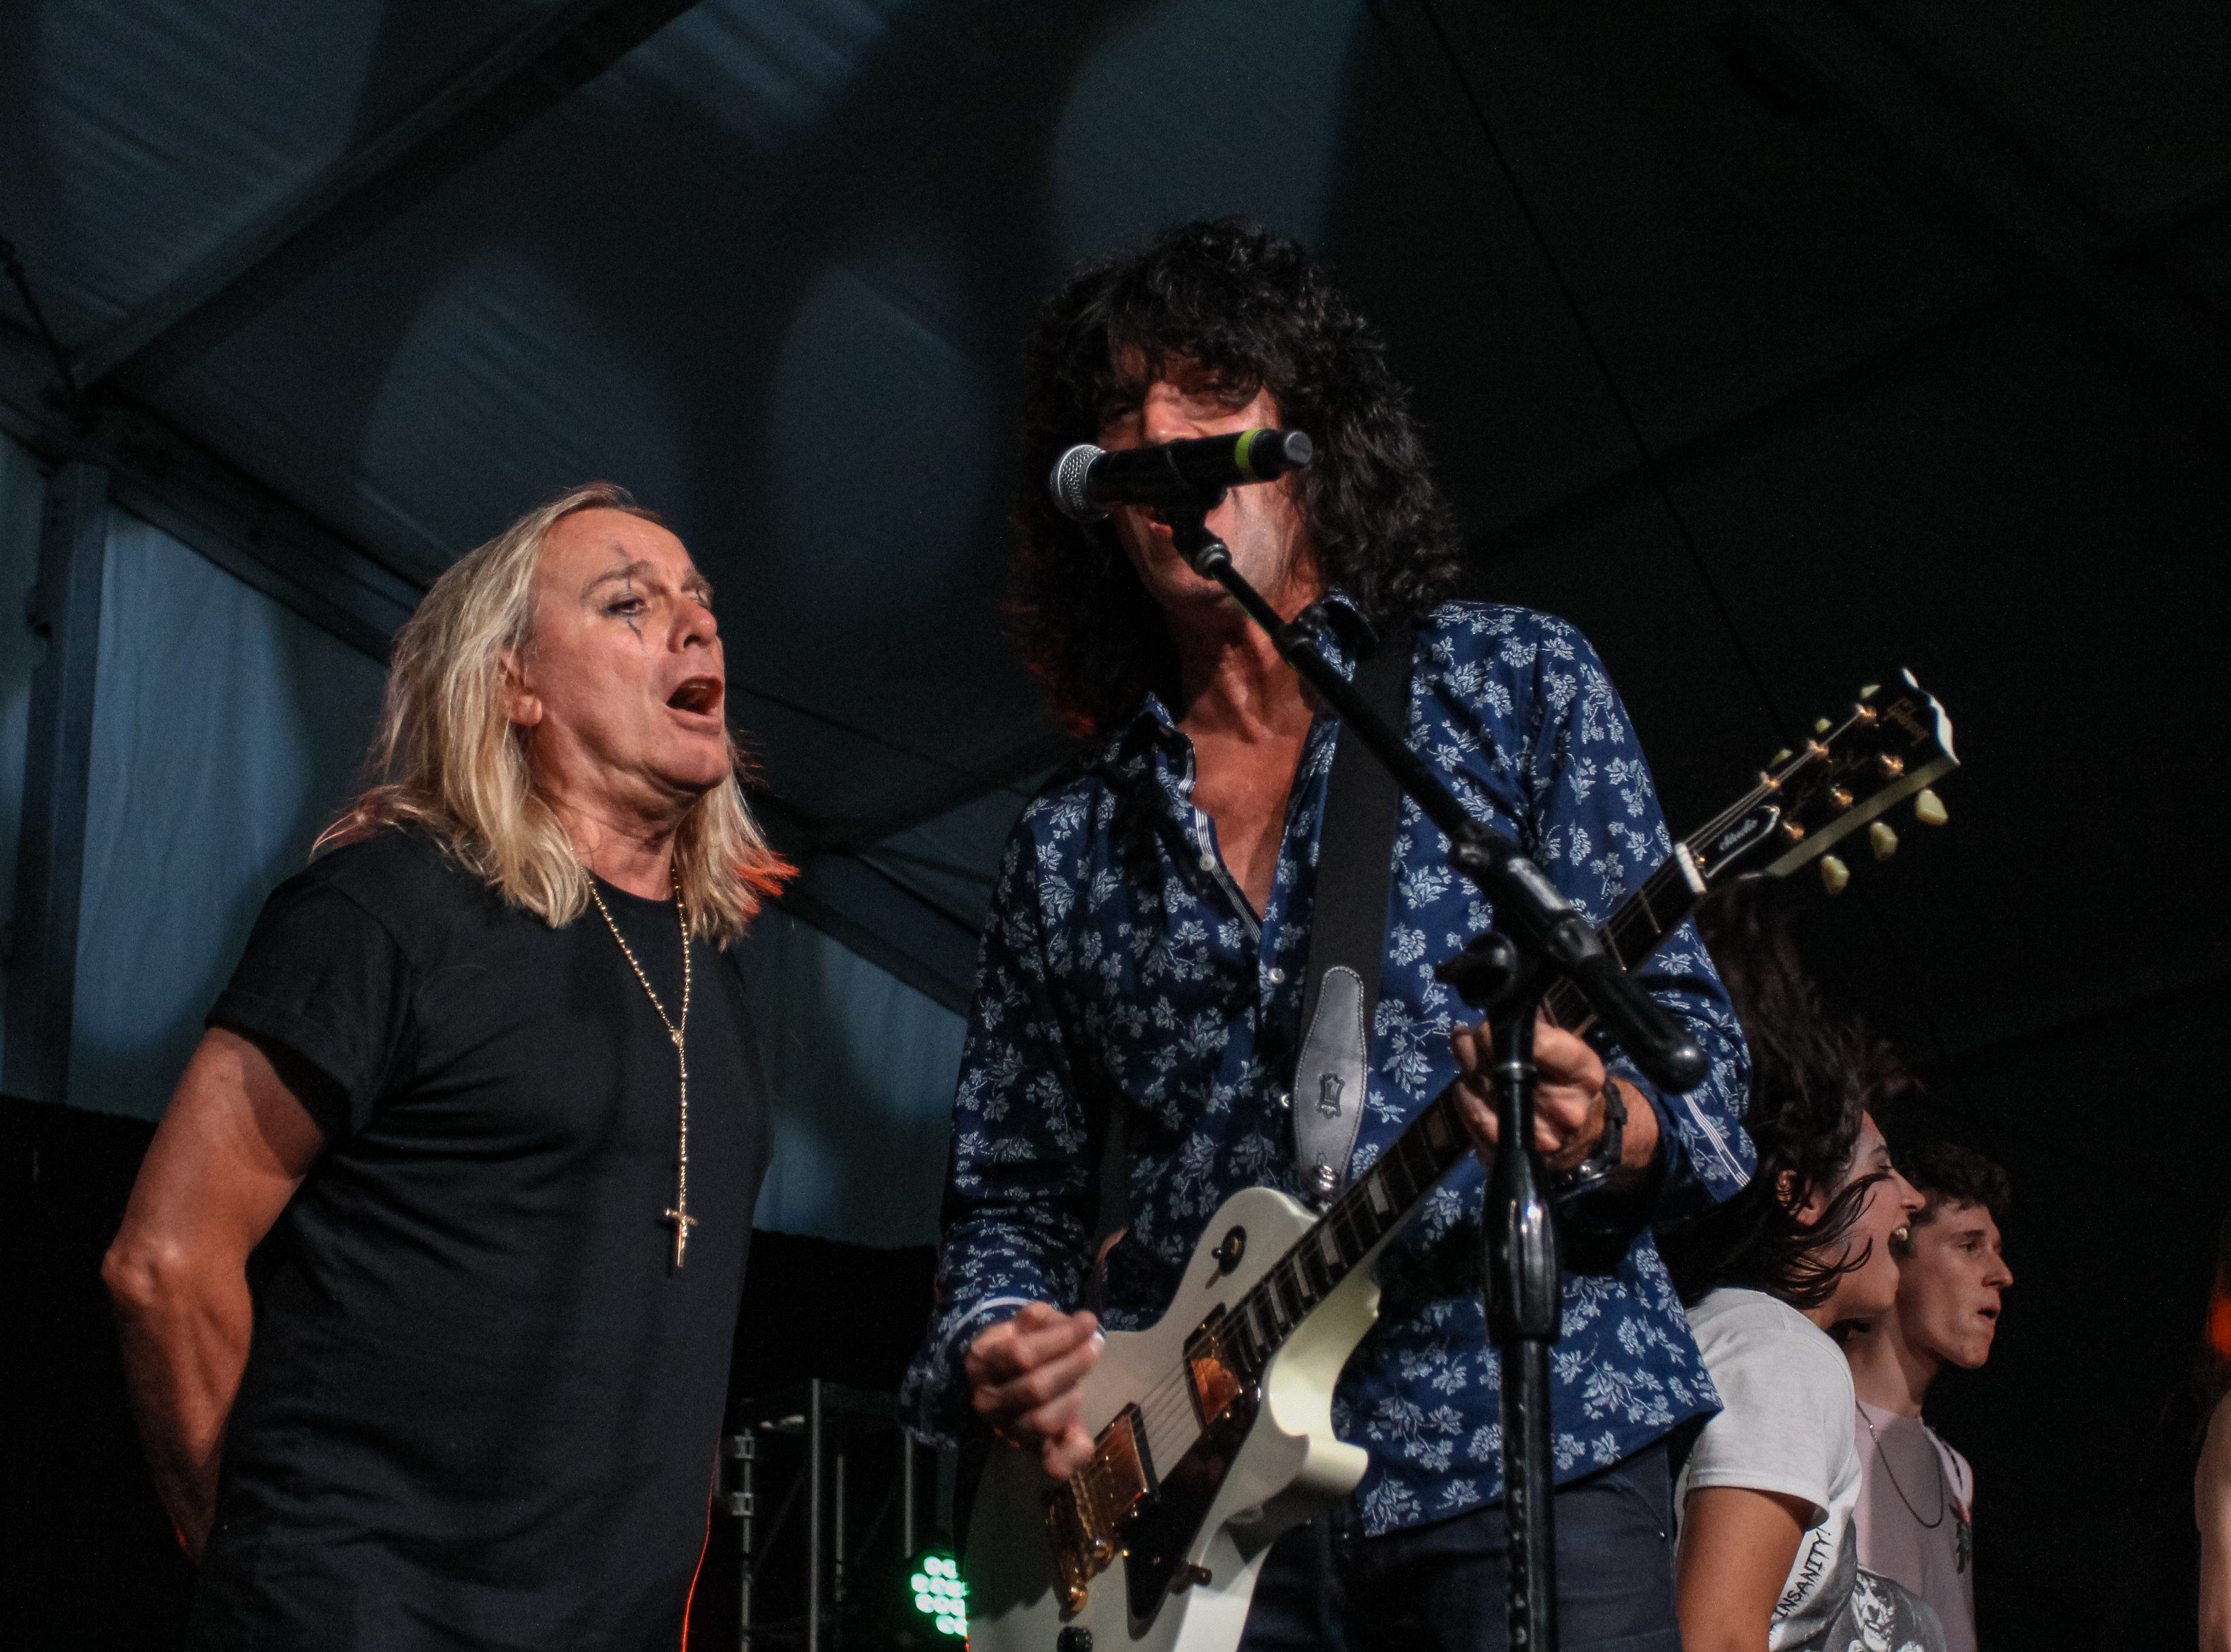 Robin Zander of Cheap Trick and Tommy Thayer of Kiss preform at Alice Cooper's Rock & Roll Fundraising Bash at the Las Sendas Golf Club in Mesa on April 27, 2019.